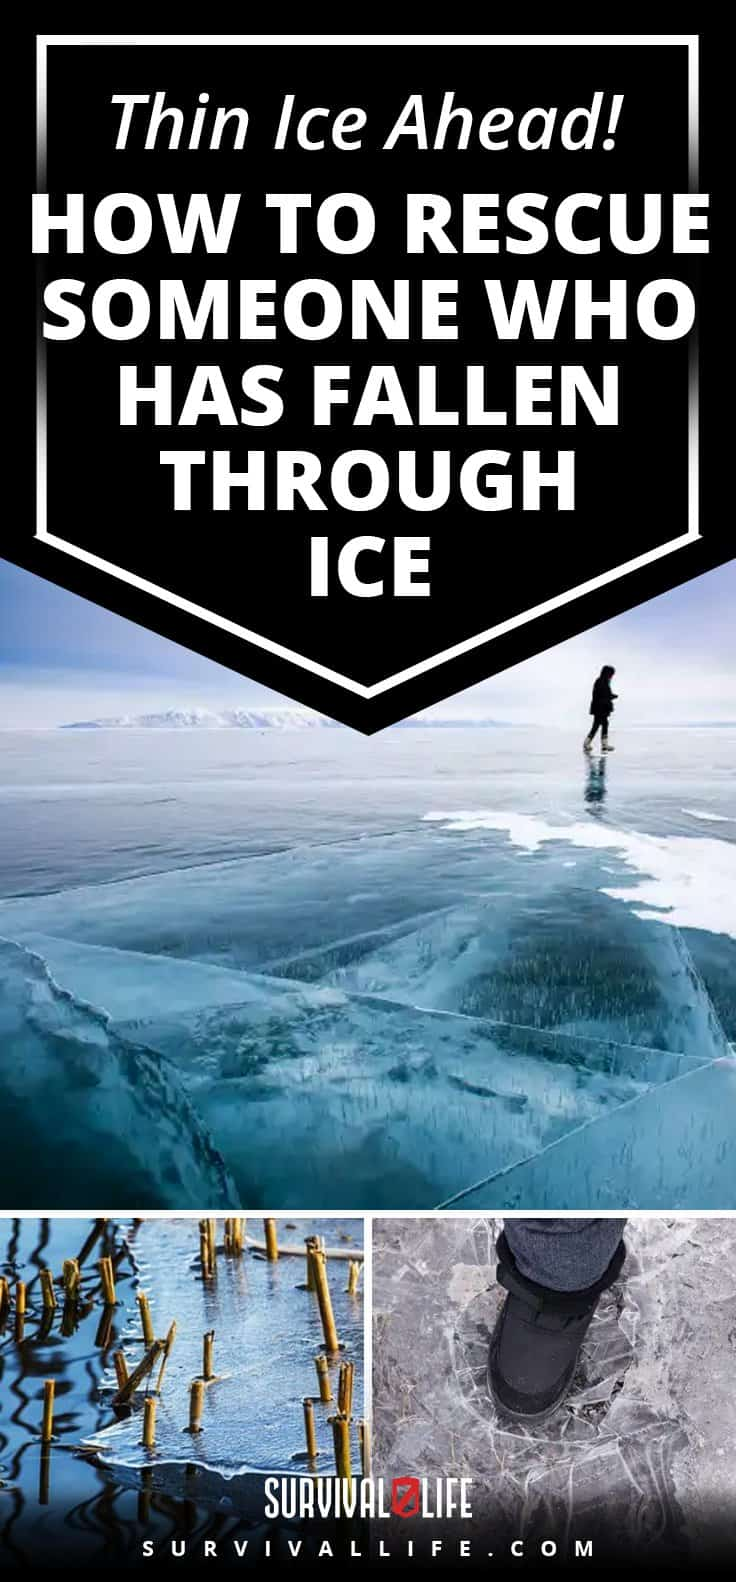 Thin Ice Ahead! How To Rescue Someone Who Has Fallen Through Ice